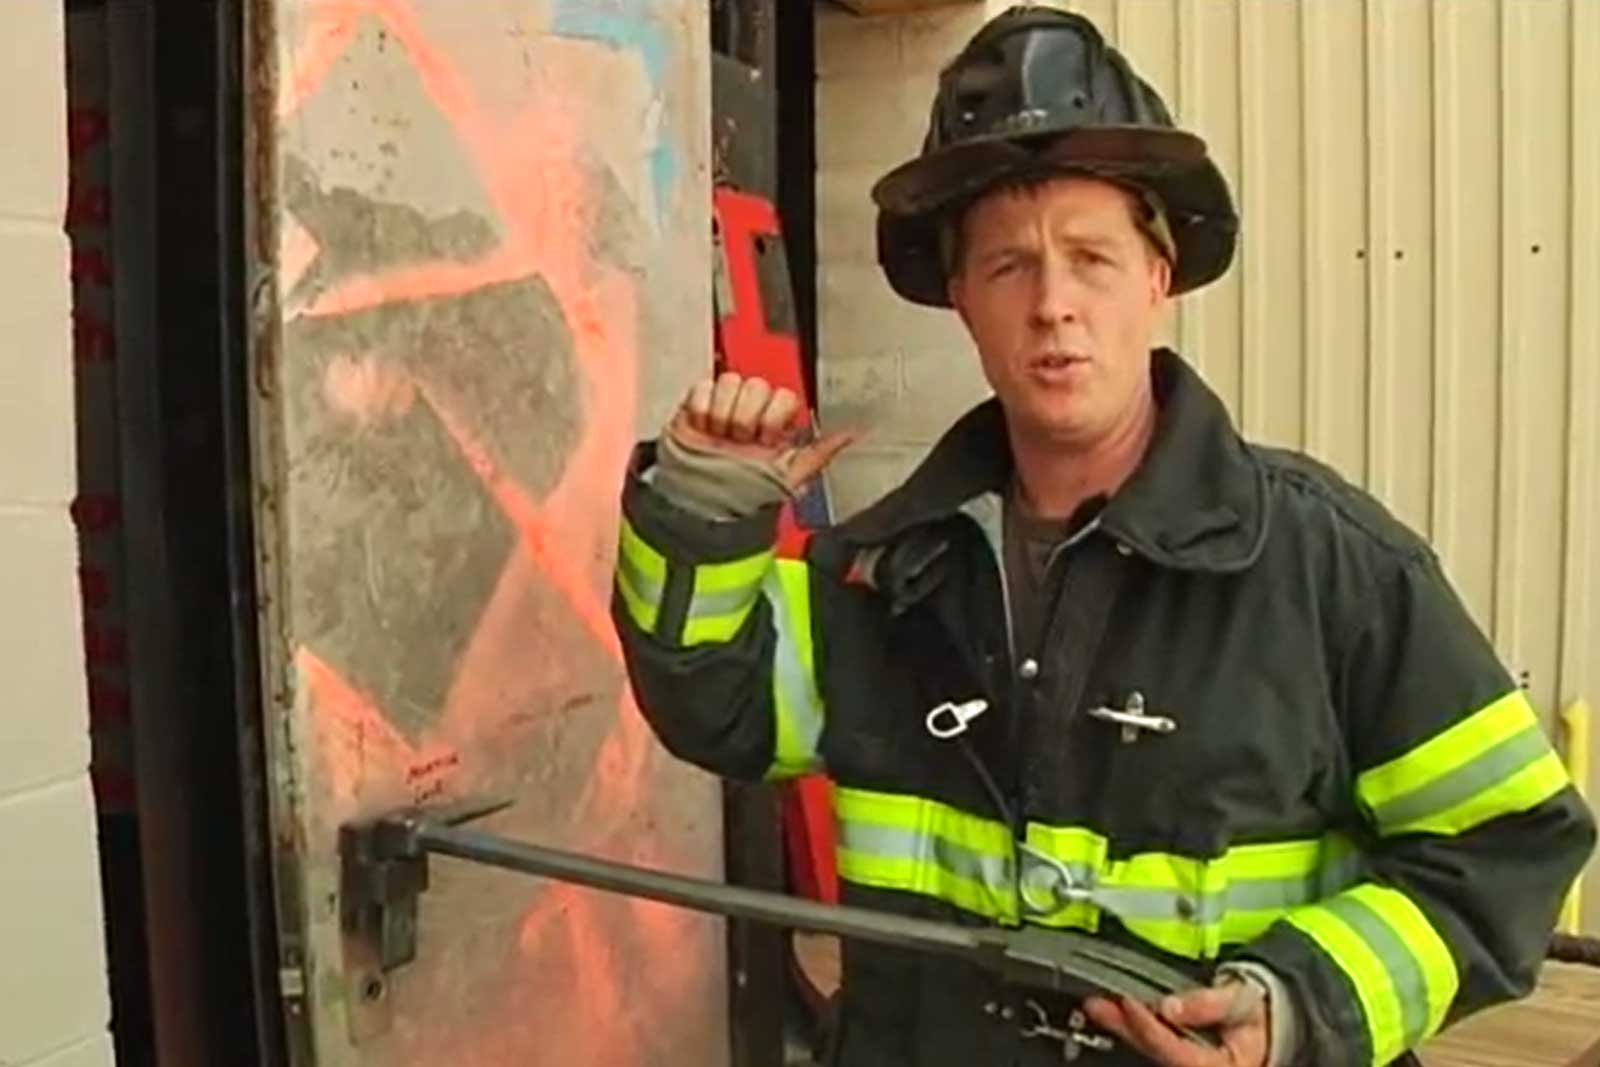 Rex Morris on through-the-lock forcible entry